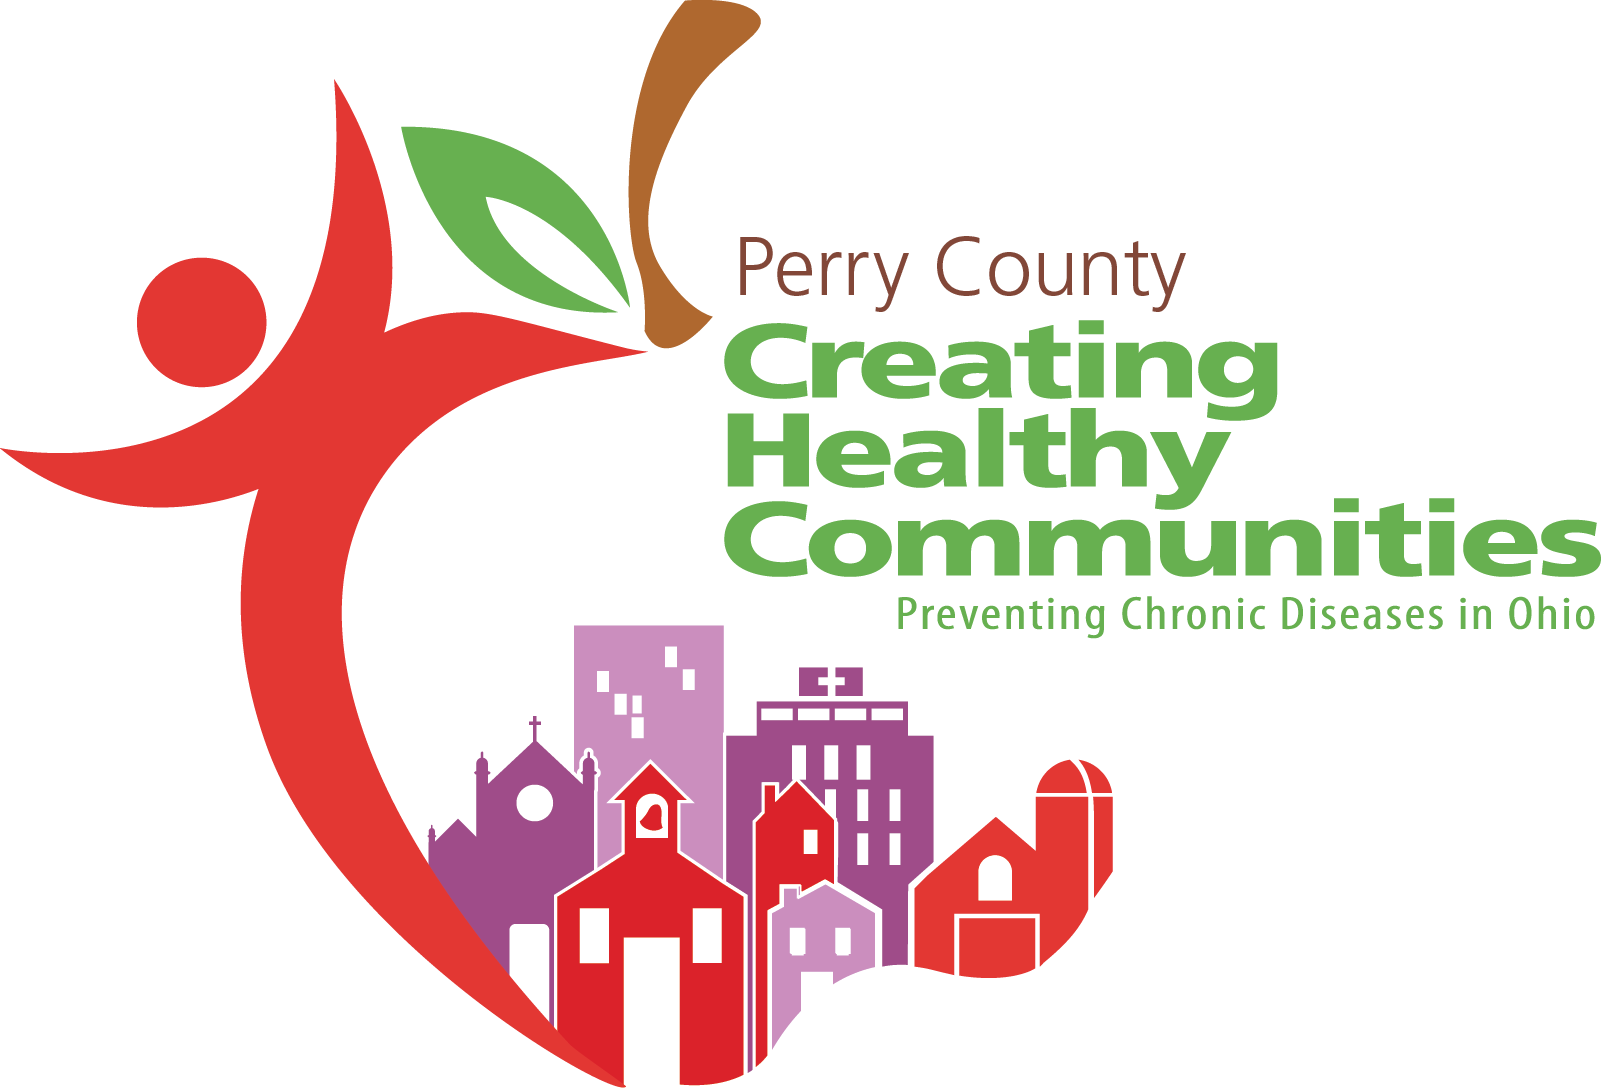 Health transparent community. Creating healthy communities perry